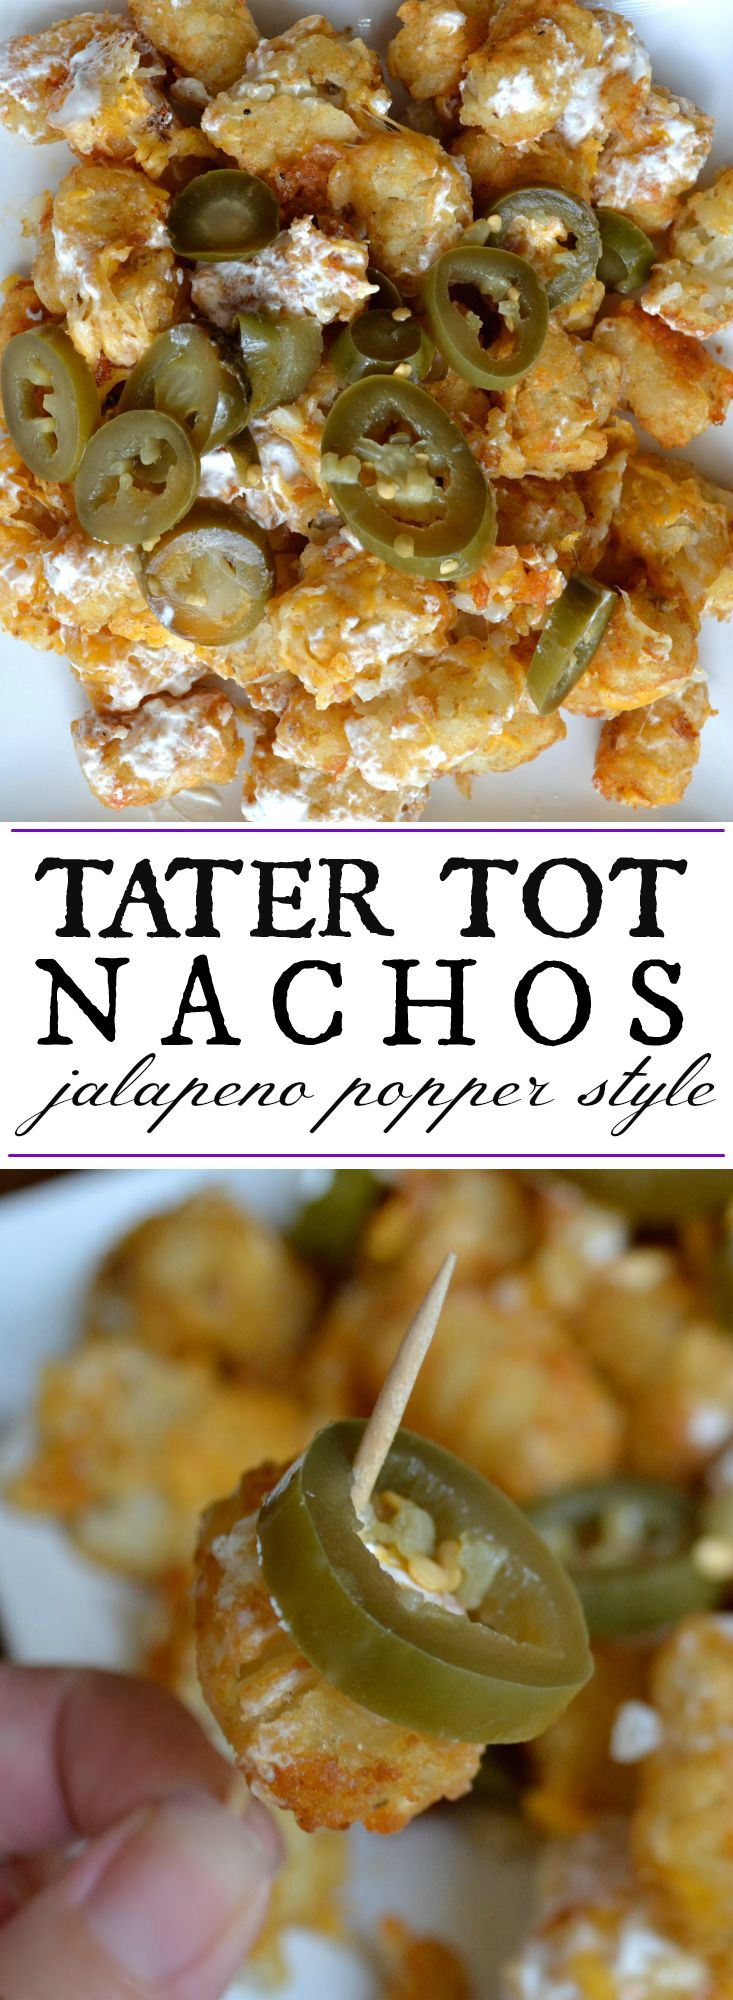 Tater tots meet jalapeno poppers meet nachos. This simple appetizer comes together in minutes and only requires four ingredients! Perfect football food.